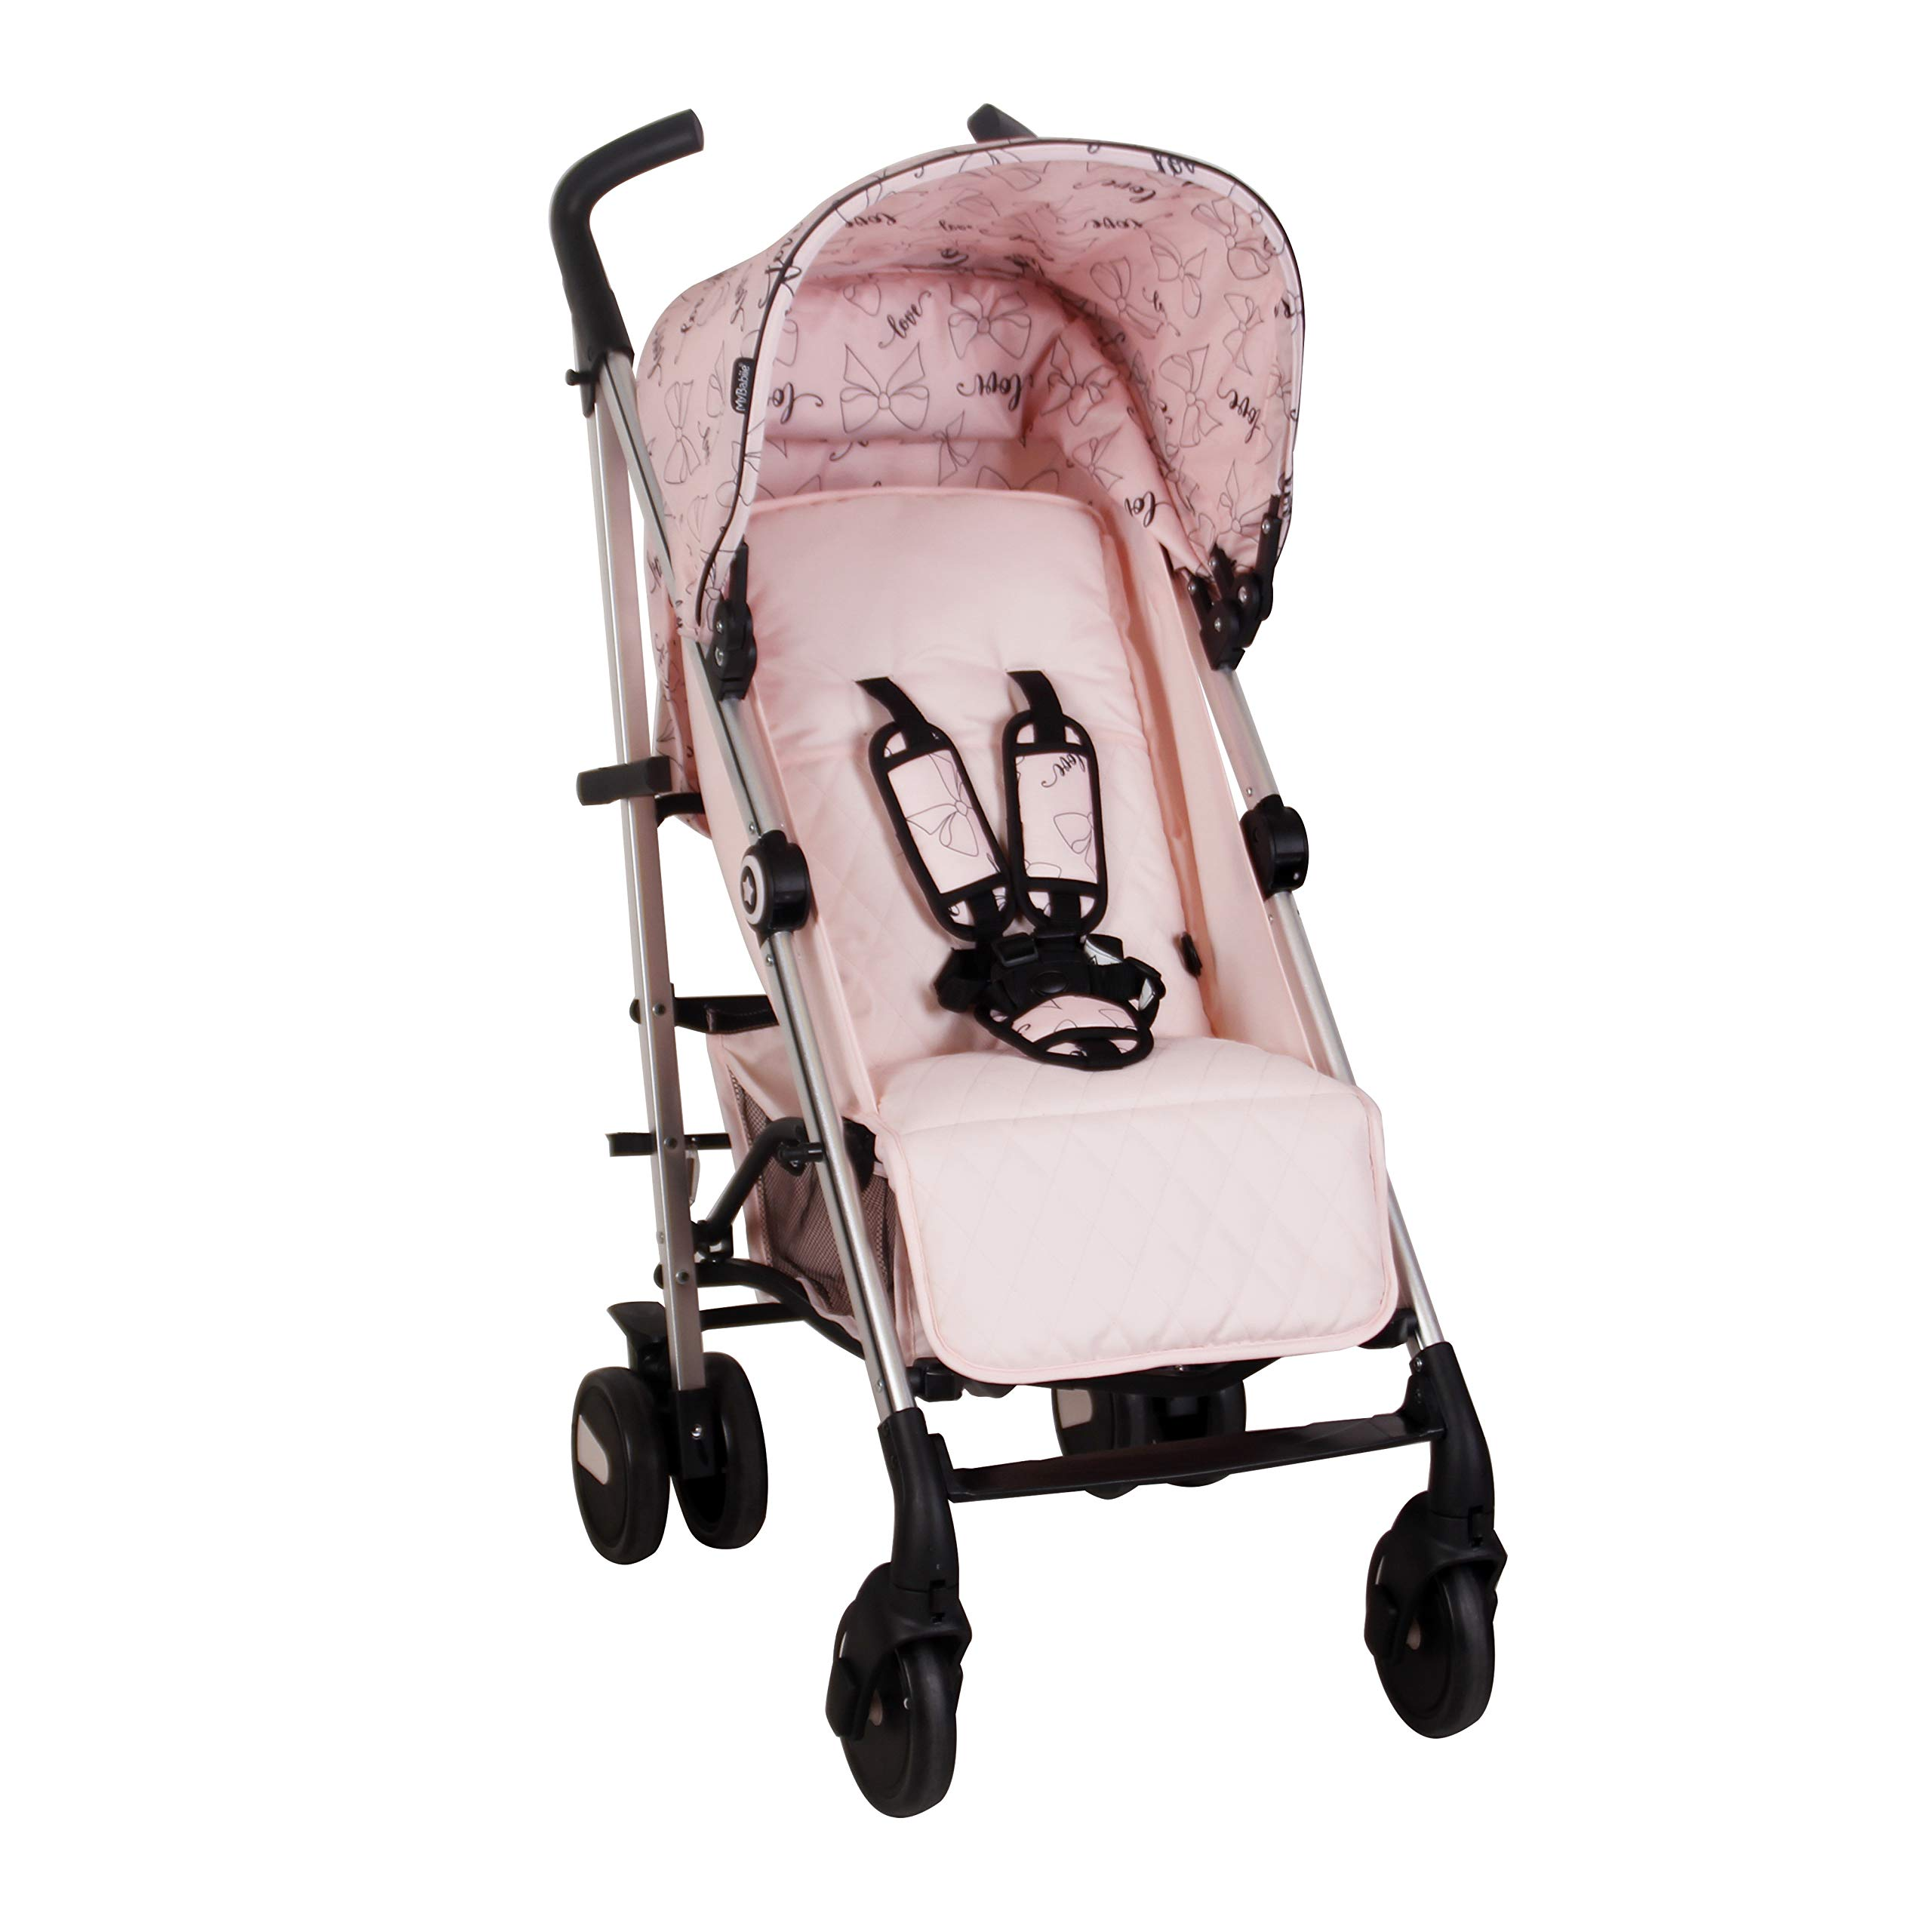 My Babiie US51 Catwalk Pink Bows Baby Stroller – Lightweight Baby Stroller with Carry Handle – Silver Frame and Pink Canopy with Bows – Lightweight Travel Stroller – Suitable from Birth – 33lbs